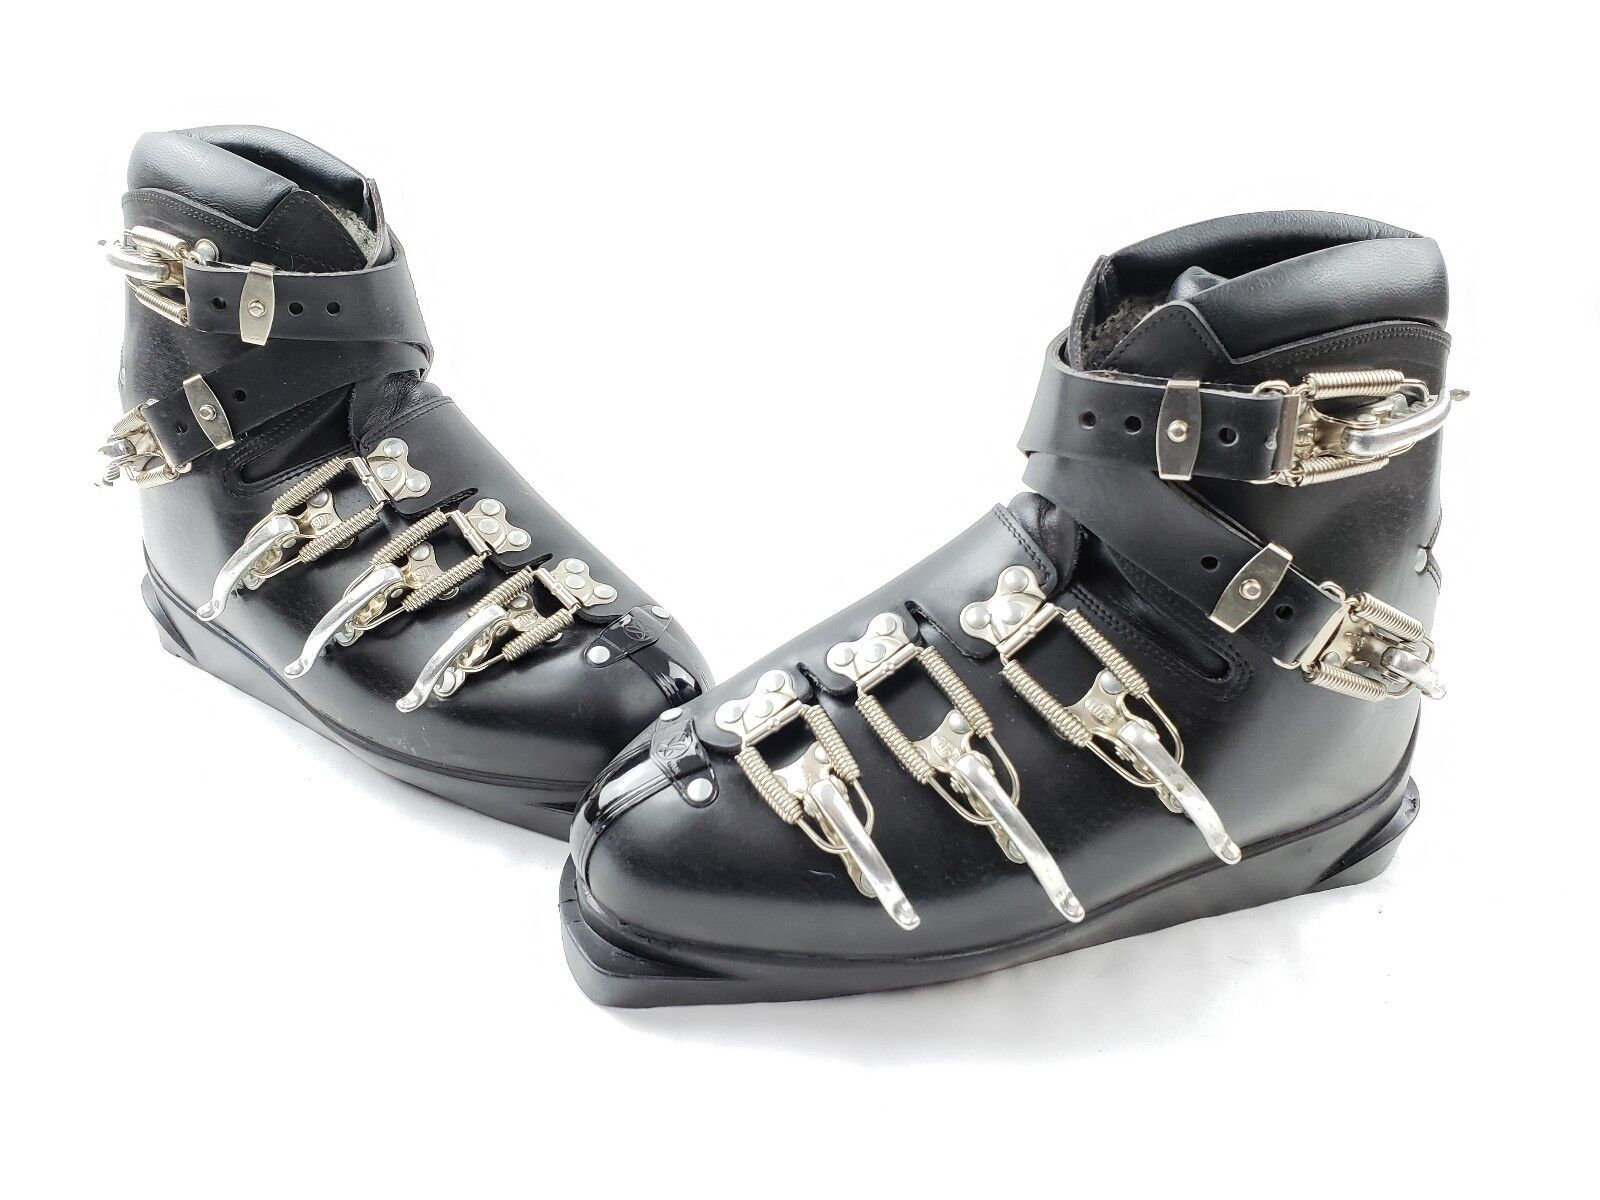 VINTAGE SR Extreme Leather Ski Boots Made  in Austria Men's Size 9 - NEW  shop now